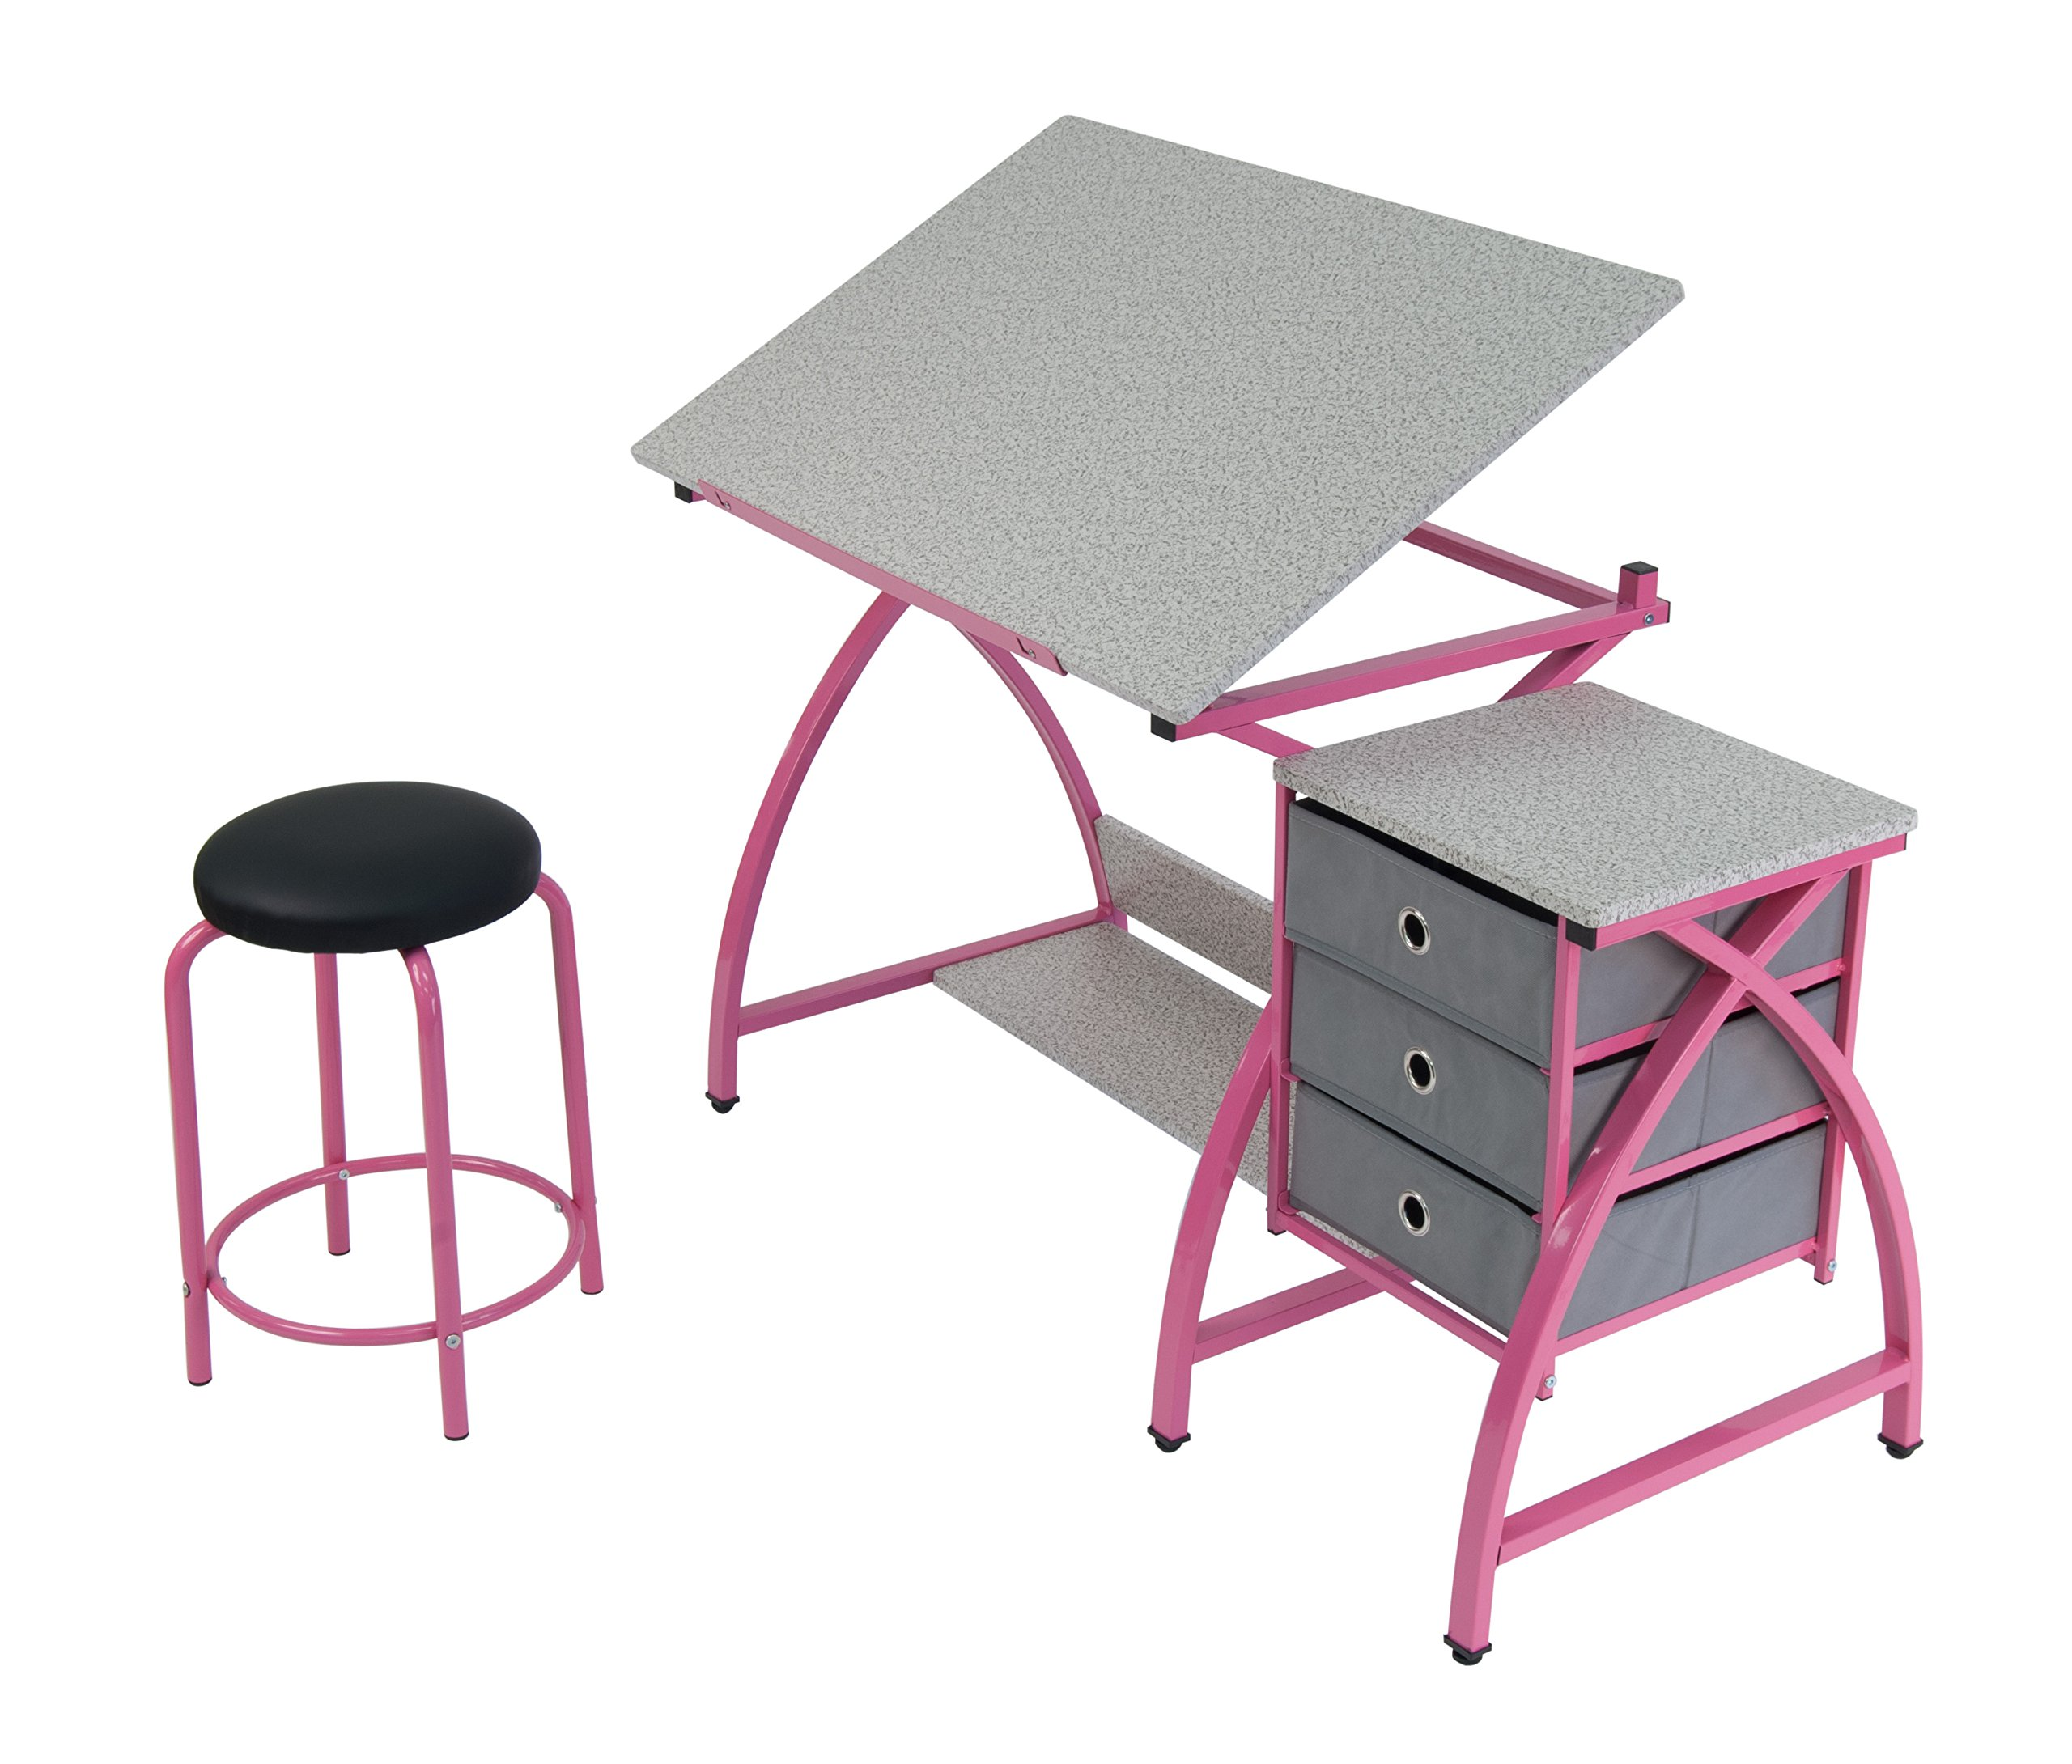 Comet Center with Stool in Pink / Spatter Gray by SD Studio Designs (Image #3)